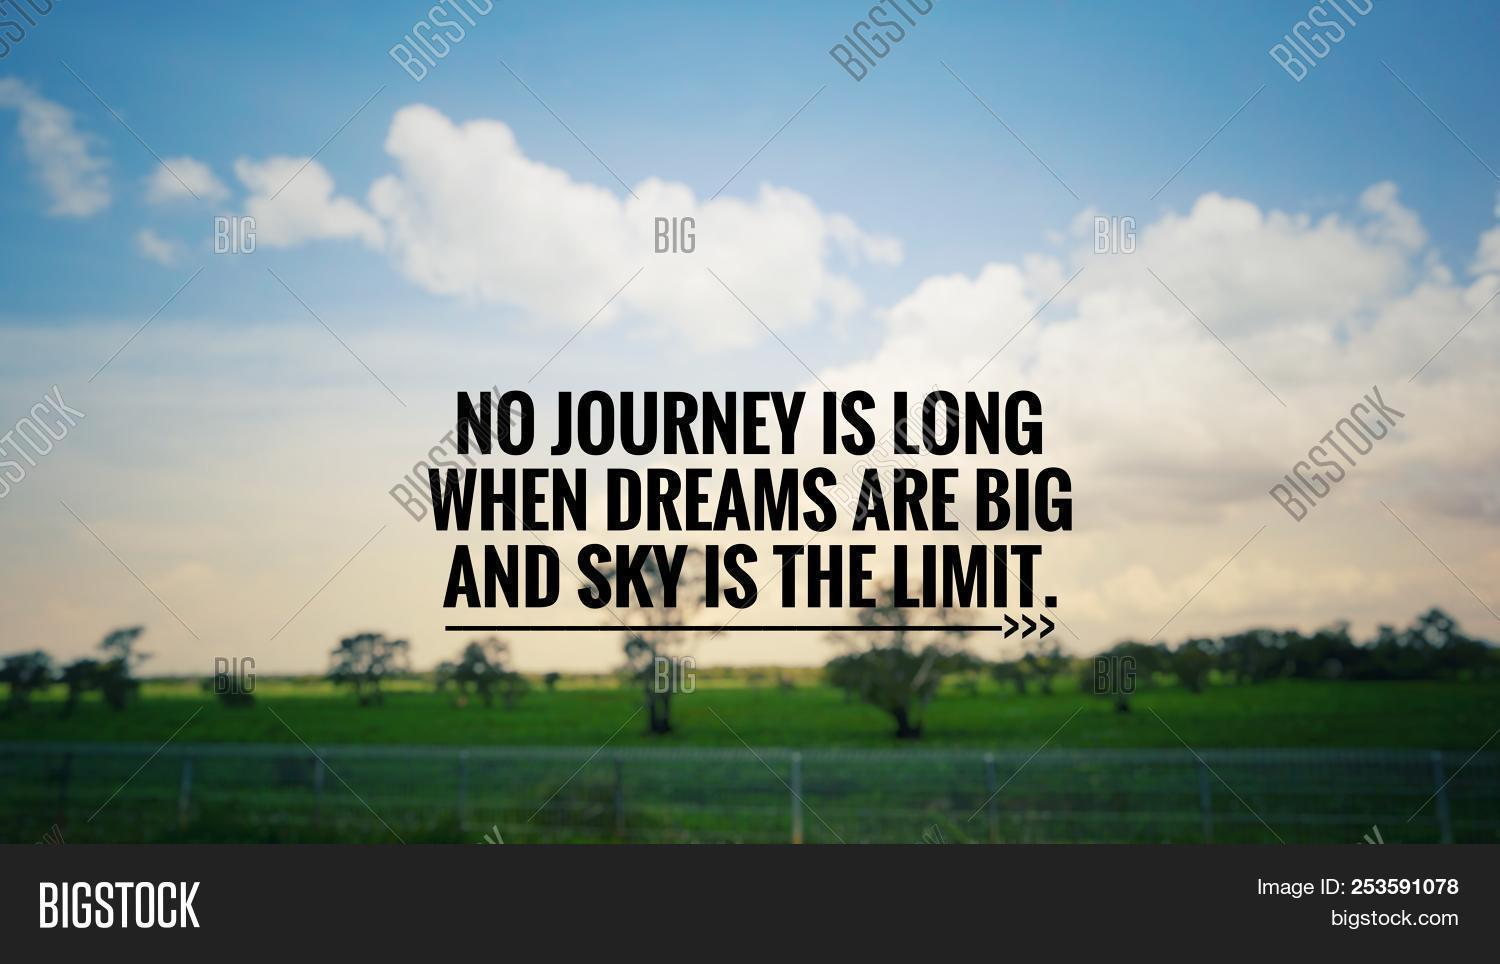 motivational image photo trial bigstock